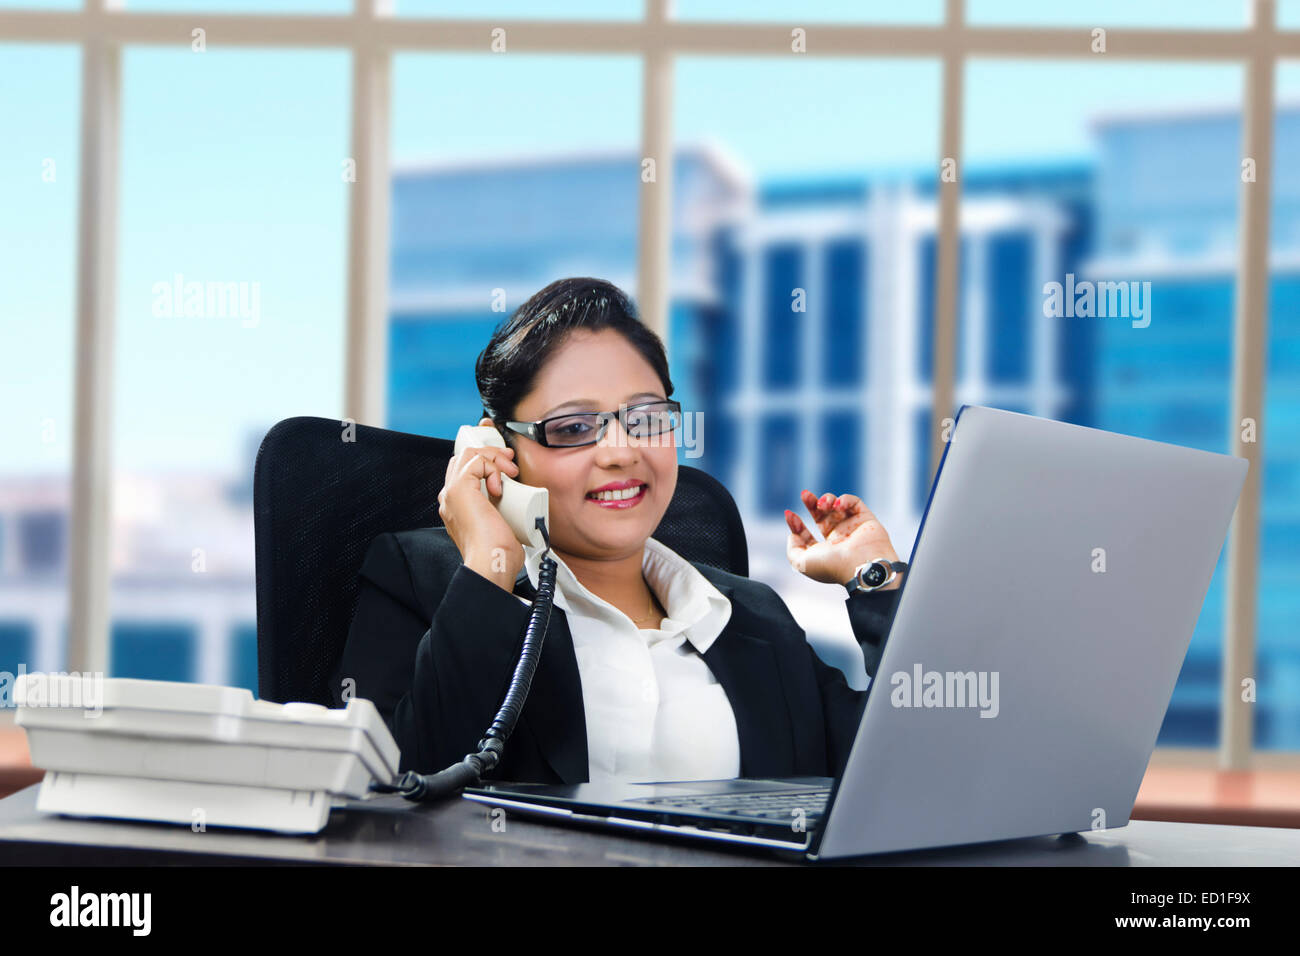 1 indian  Business Woman office  laptop Working - Stock Image